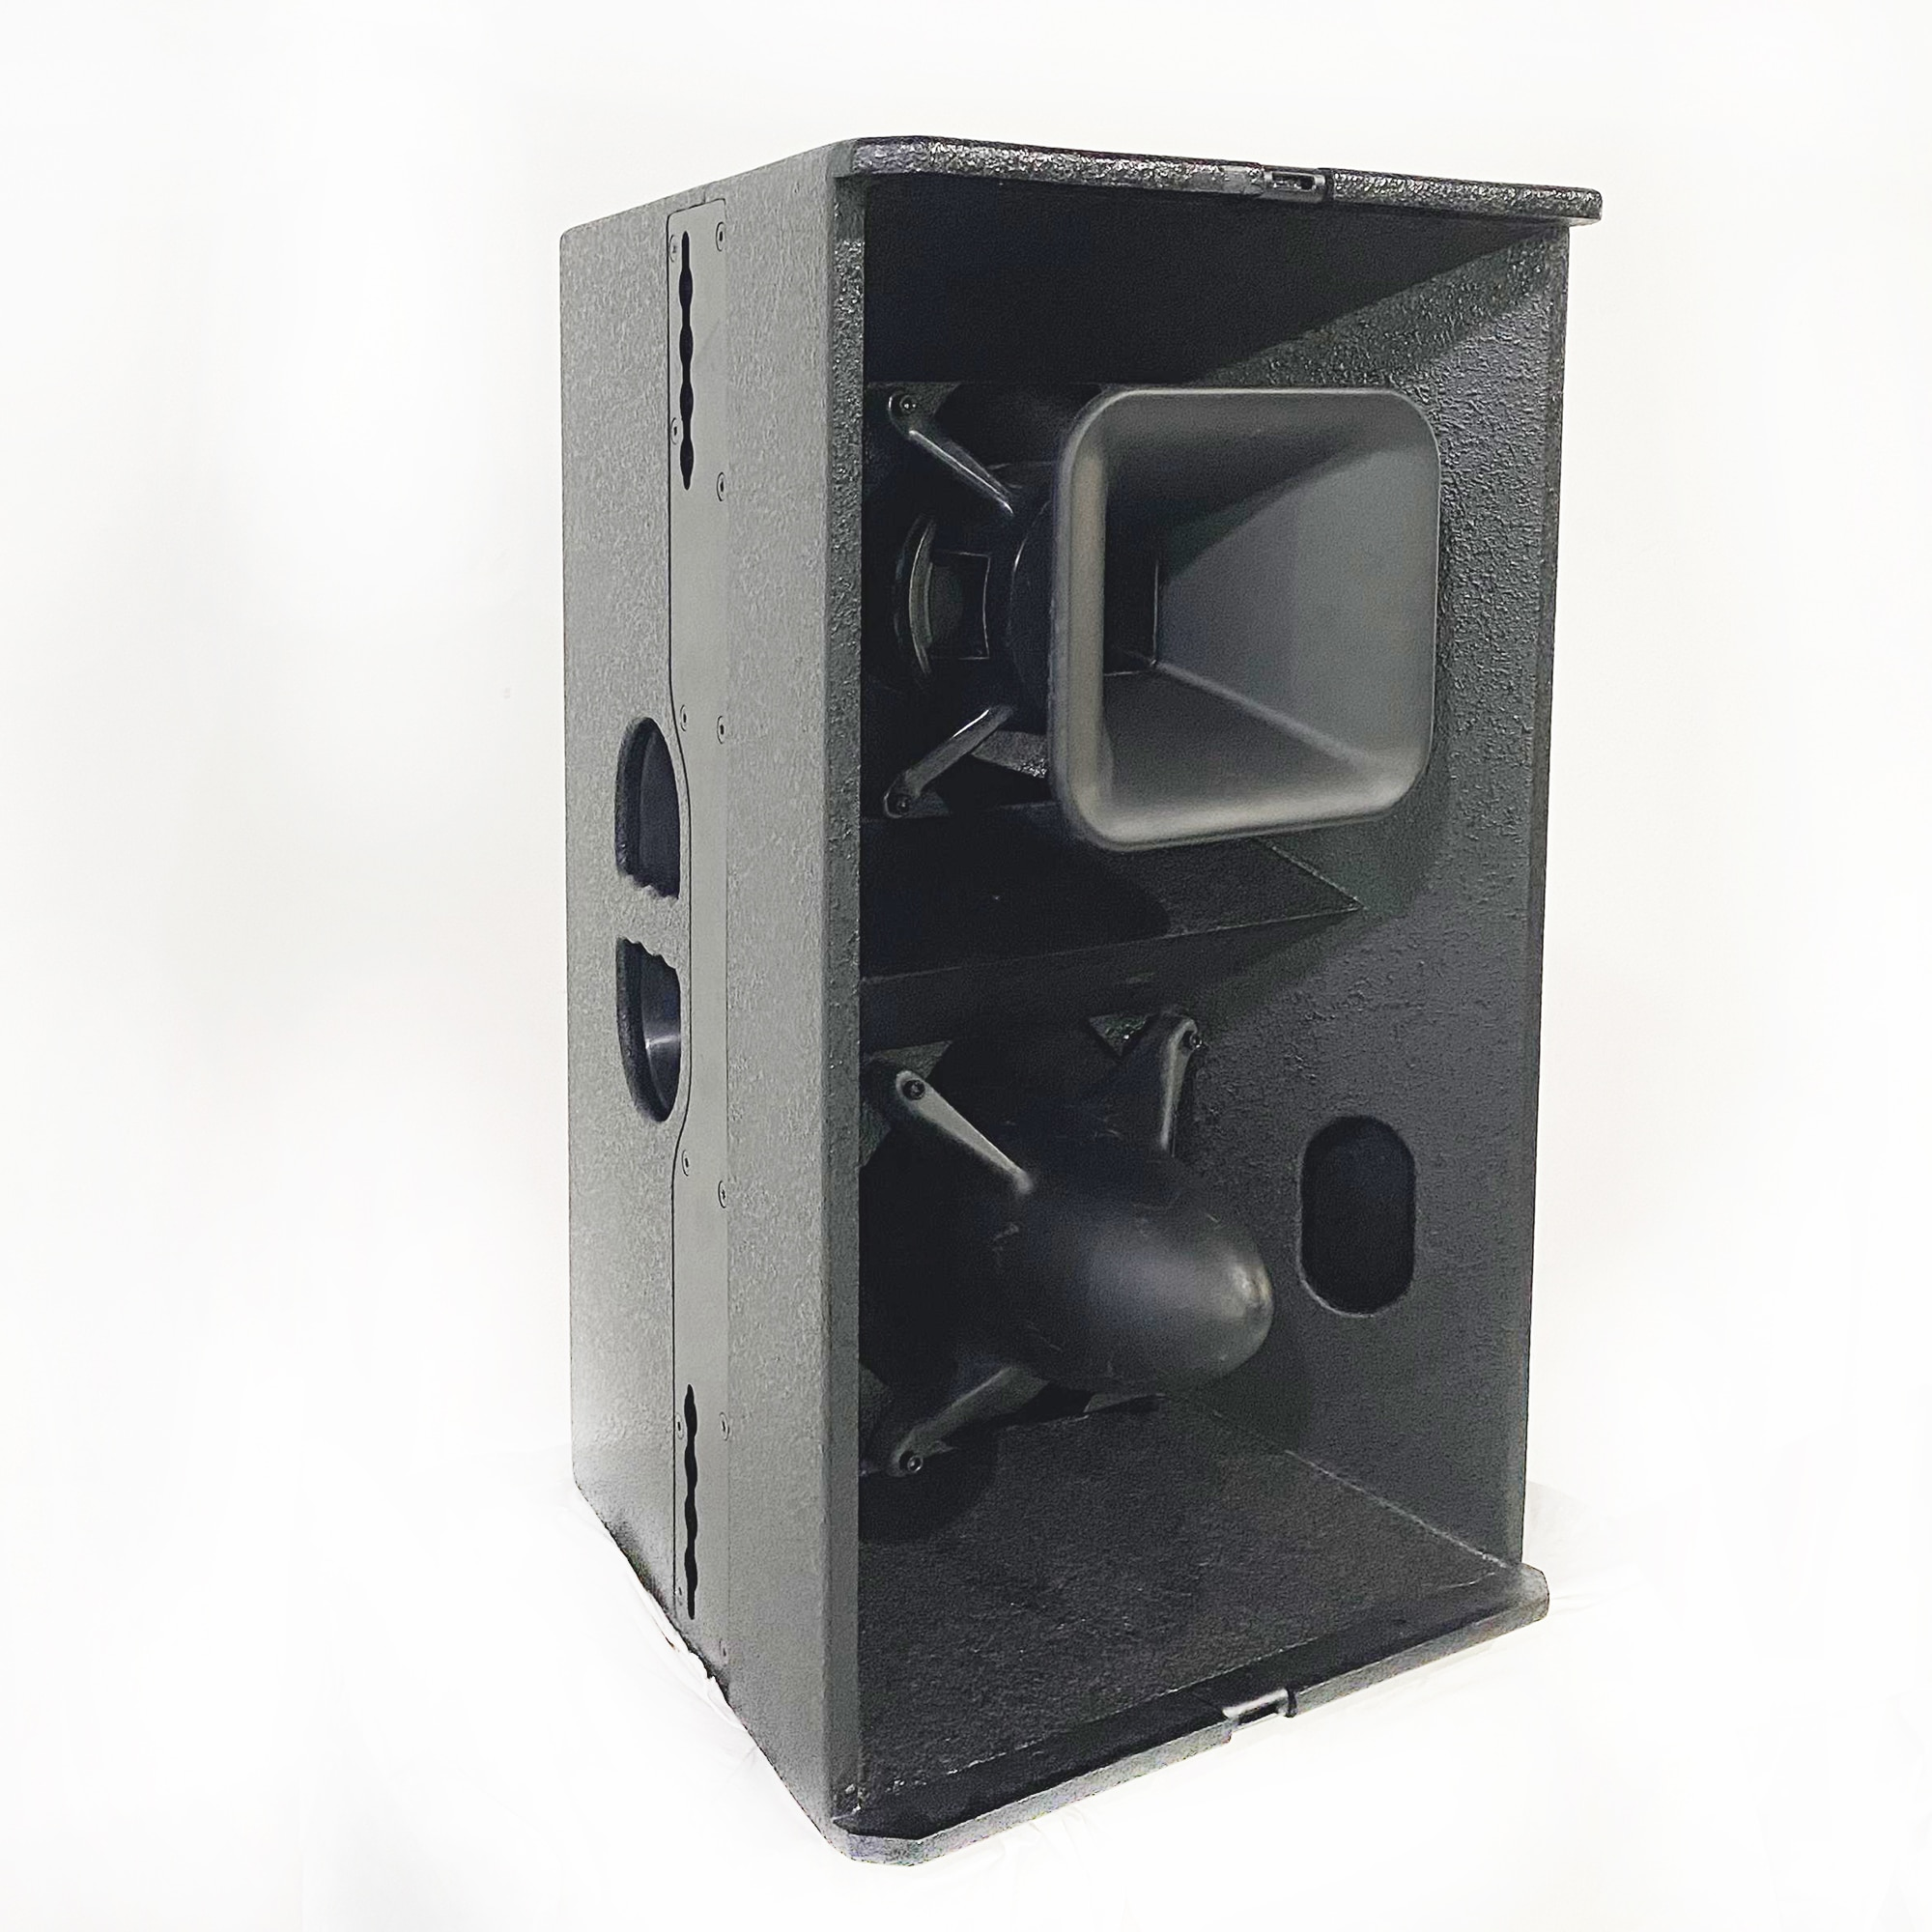 PA Sound System 12 Inch Loudspeaker China Factory Two Way Dual 12 Inch Professional Audio Line Array Speaker